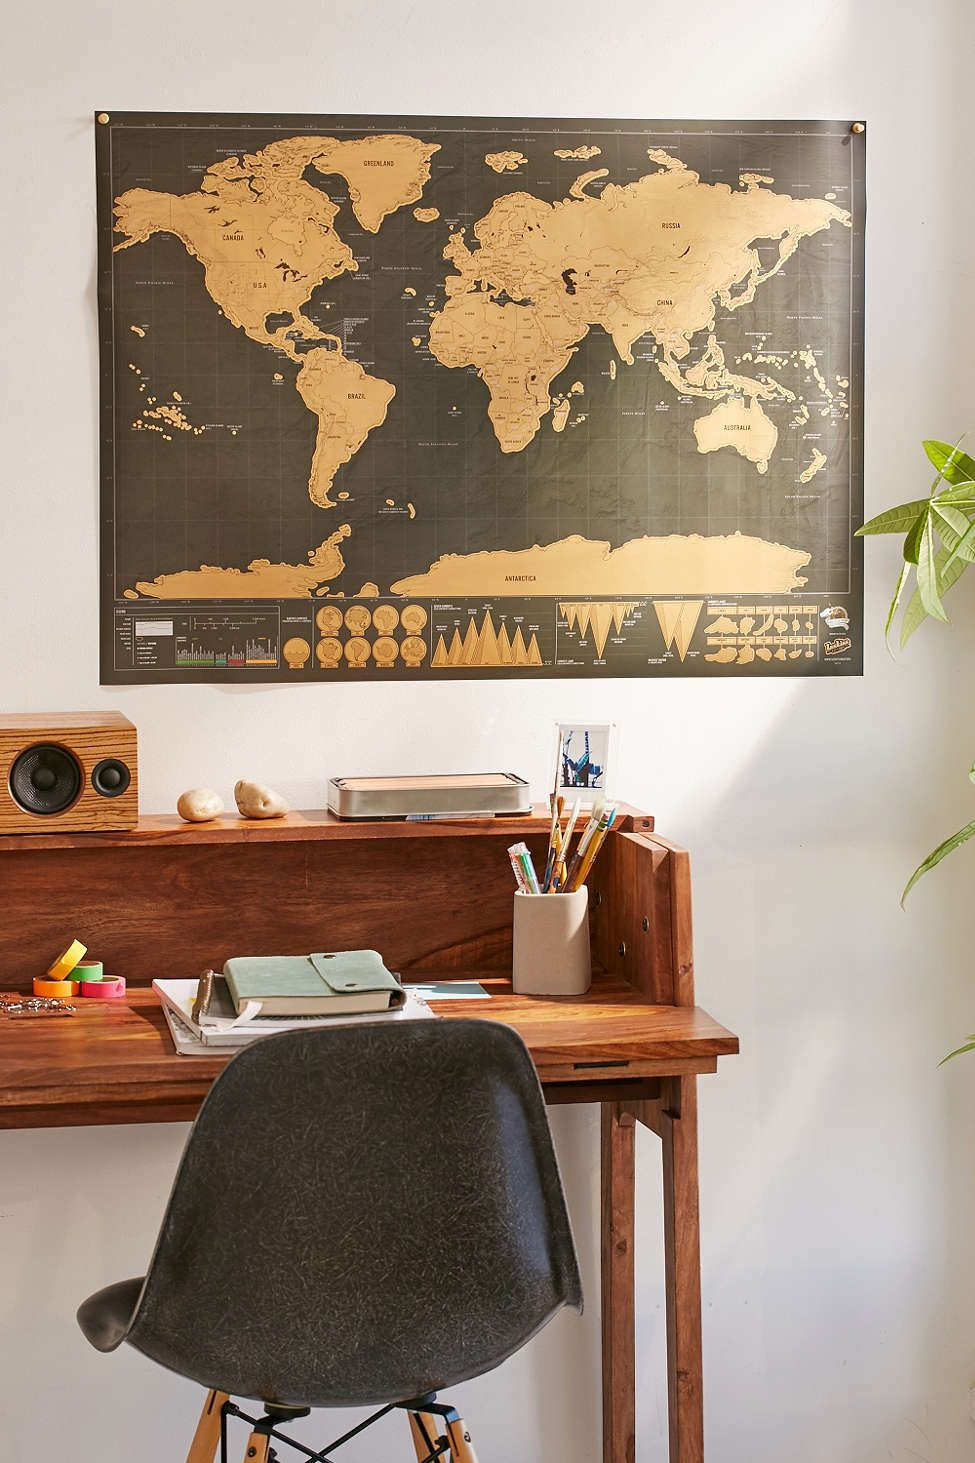 Deluxe world scratch map bedrooms flats and nest 32x23 deluxe world scratch map 39 scratch off place when youve been publicscrutiny Images